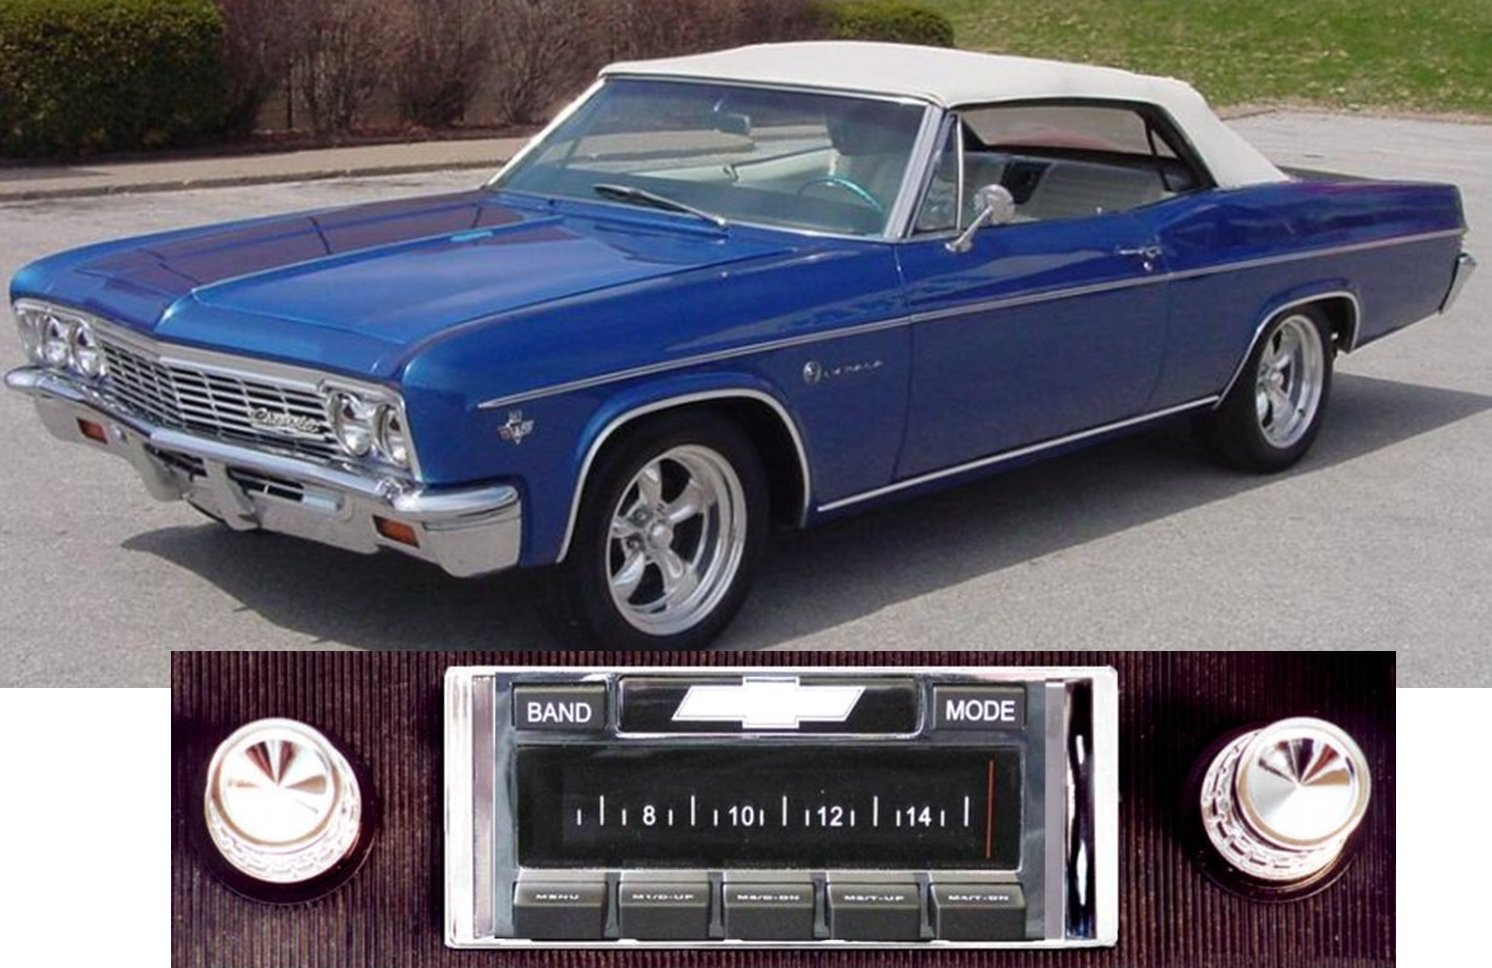 Bluetooth Enabled 1966 Chevy Impala Caprice Usa 630 Ii Parts High Power 300 Watt Am Fm Car Stereo Radio Usb Aux Ipod Inputs Electronics